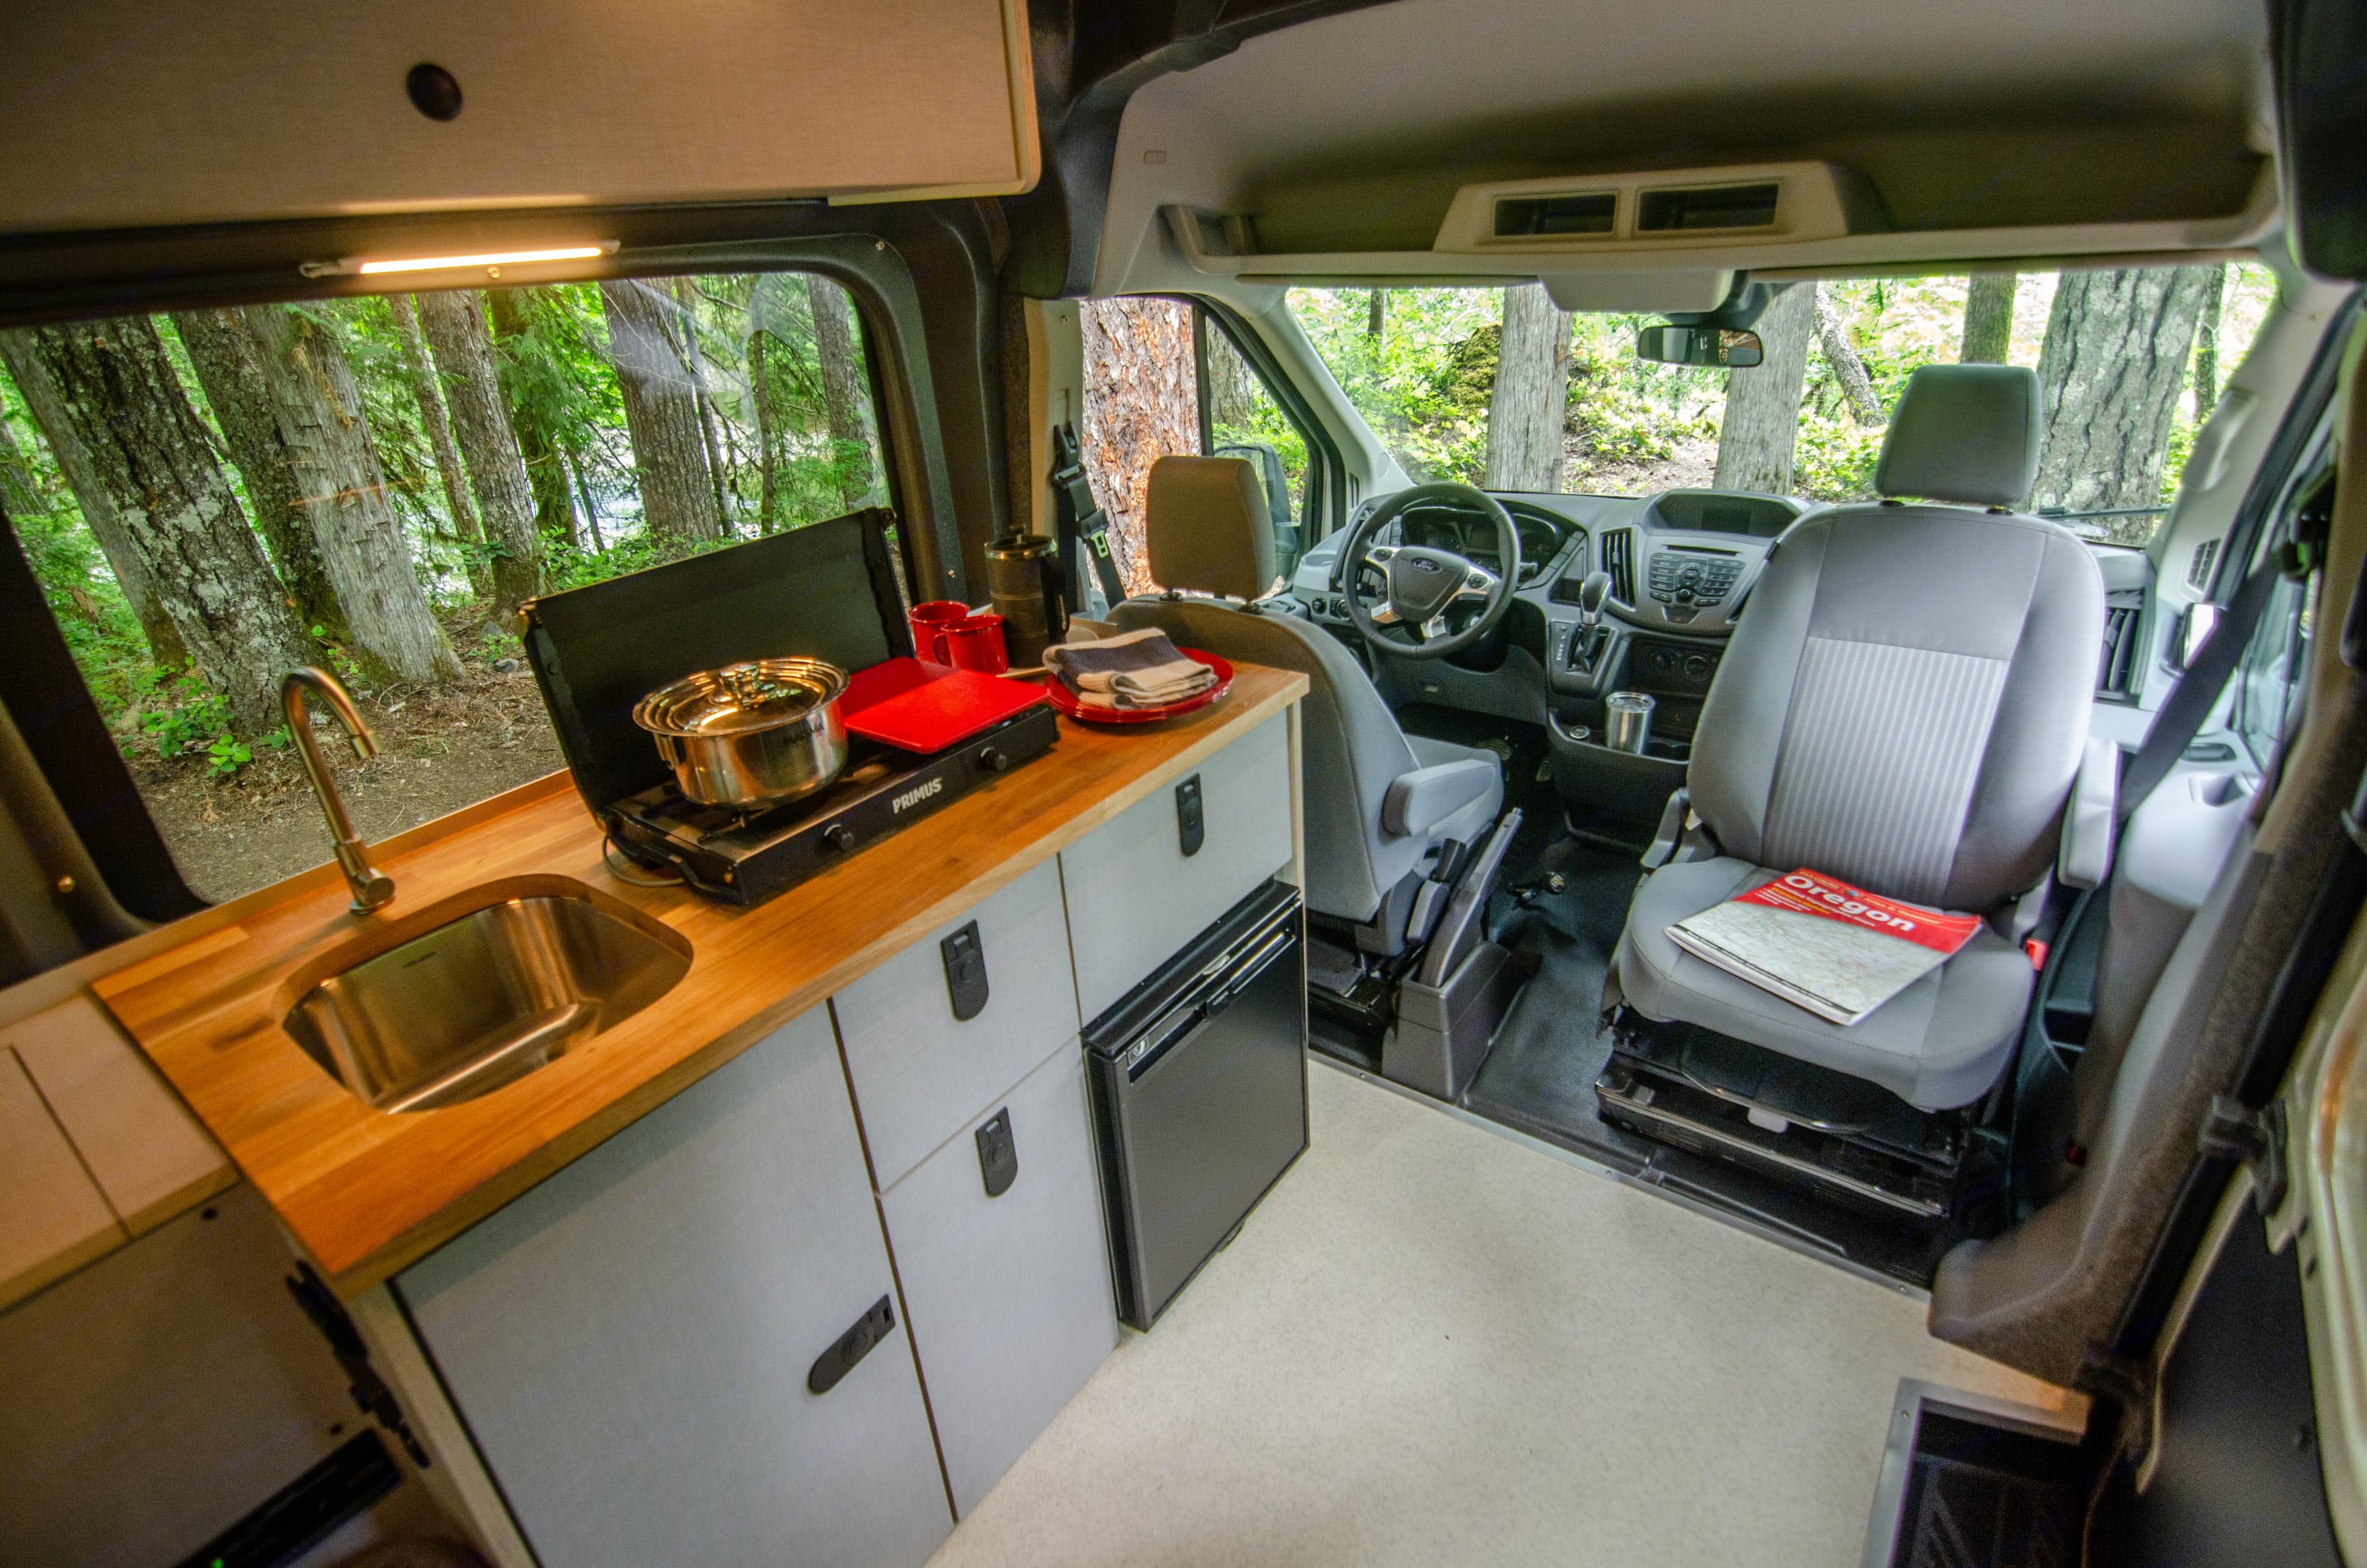 Full kitchen and front swivel seat. Ford Transit 2017